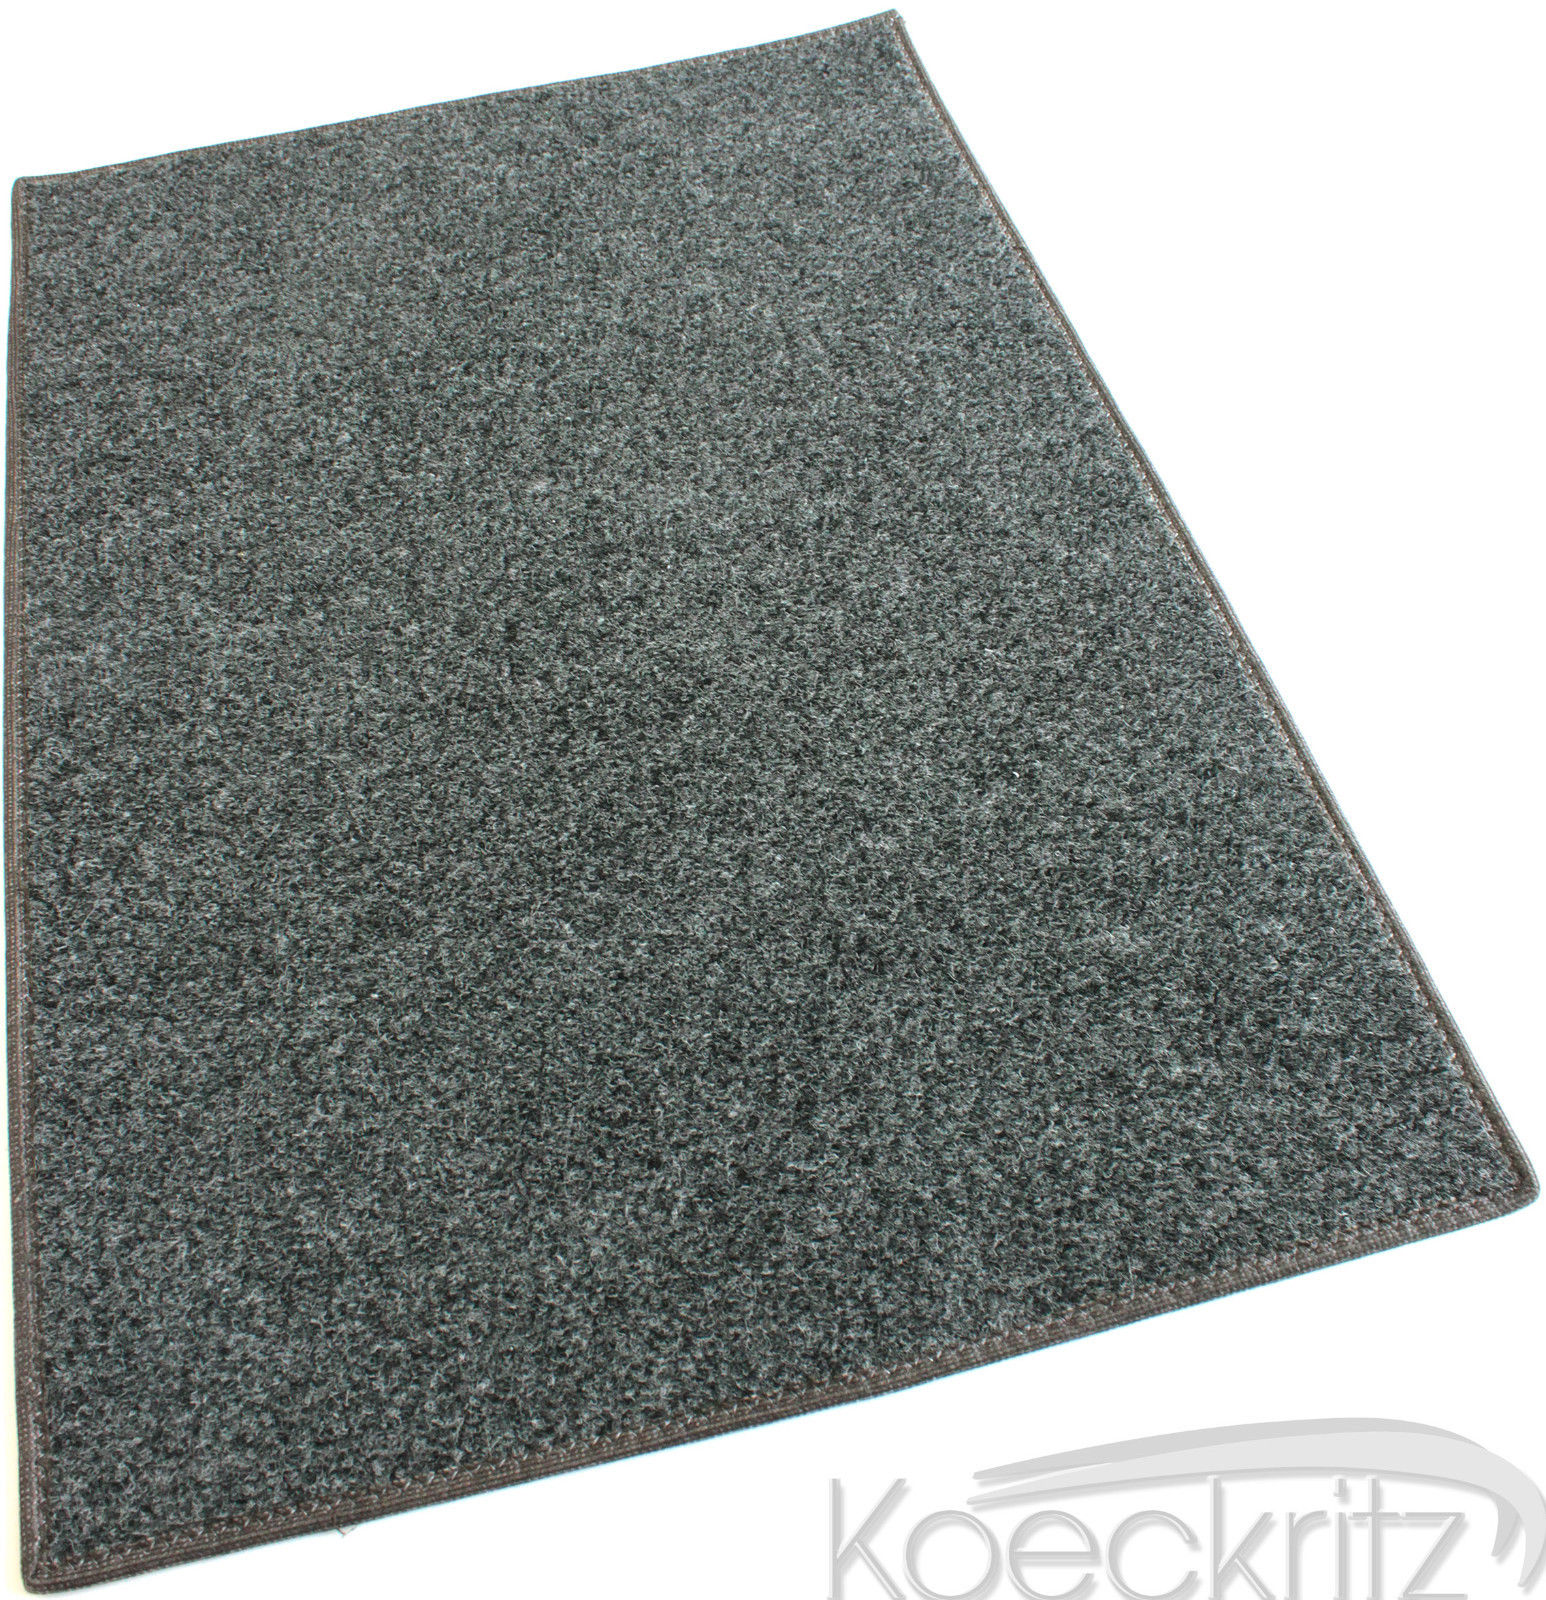 smoke indoor outdoor durable soft area rug carpet